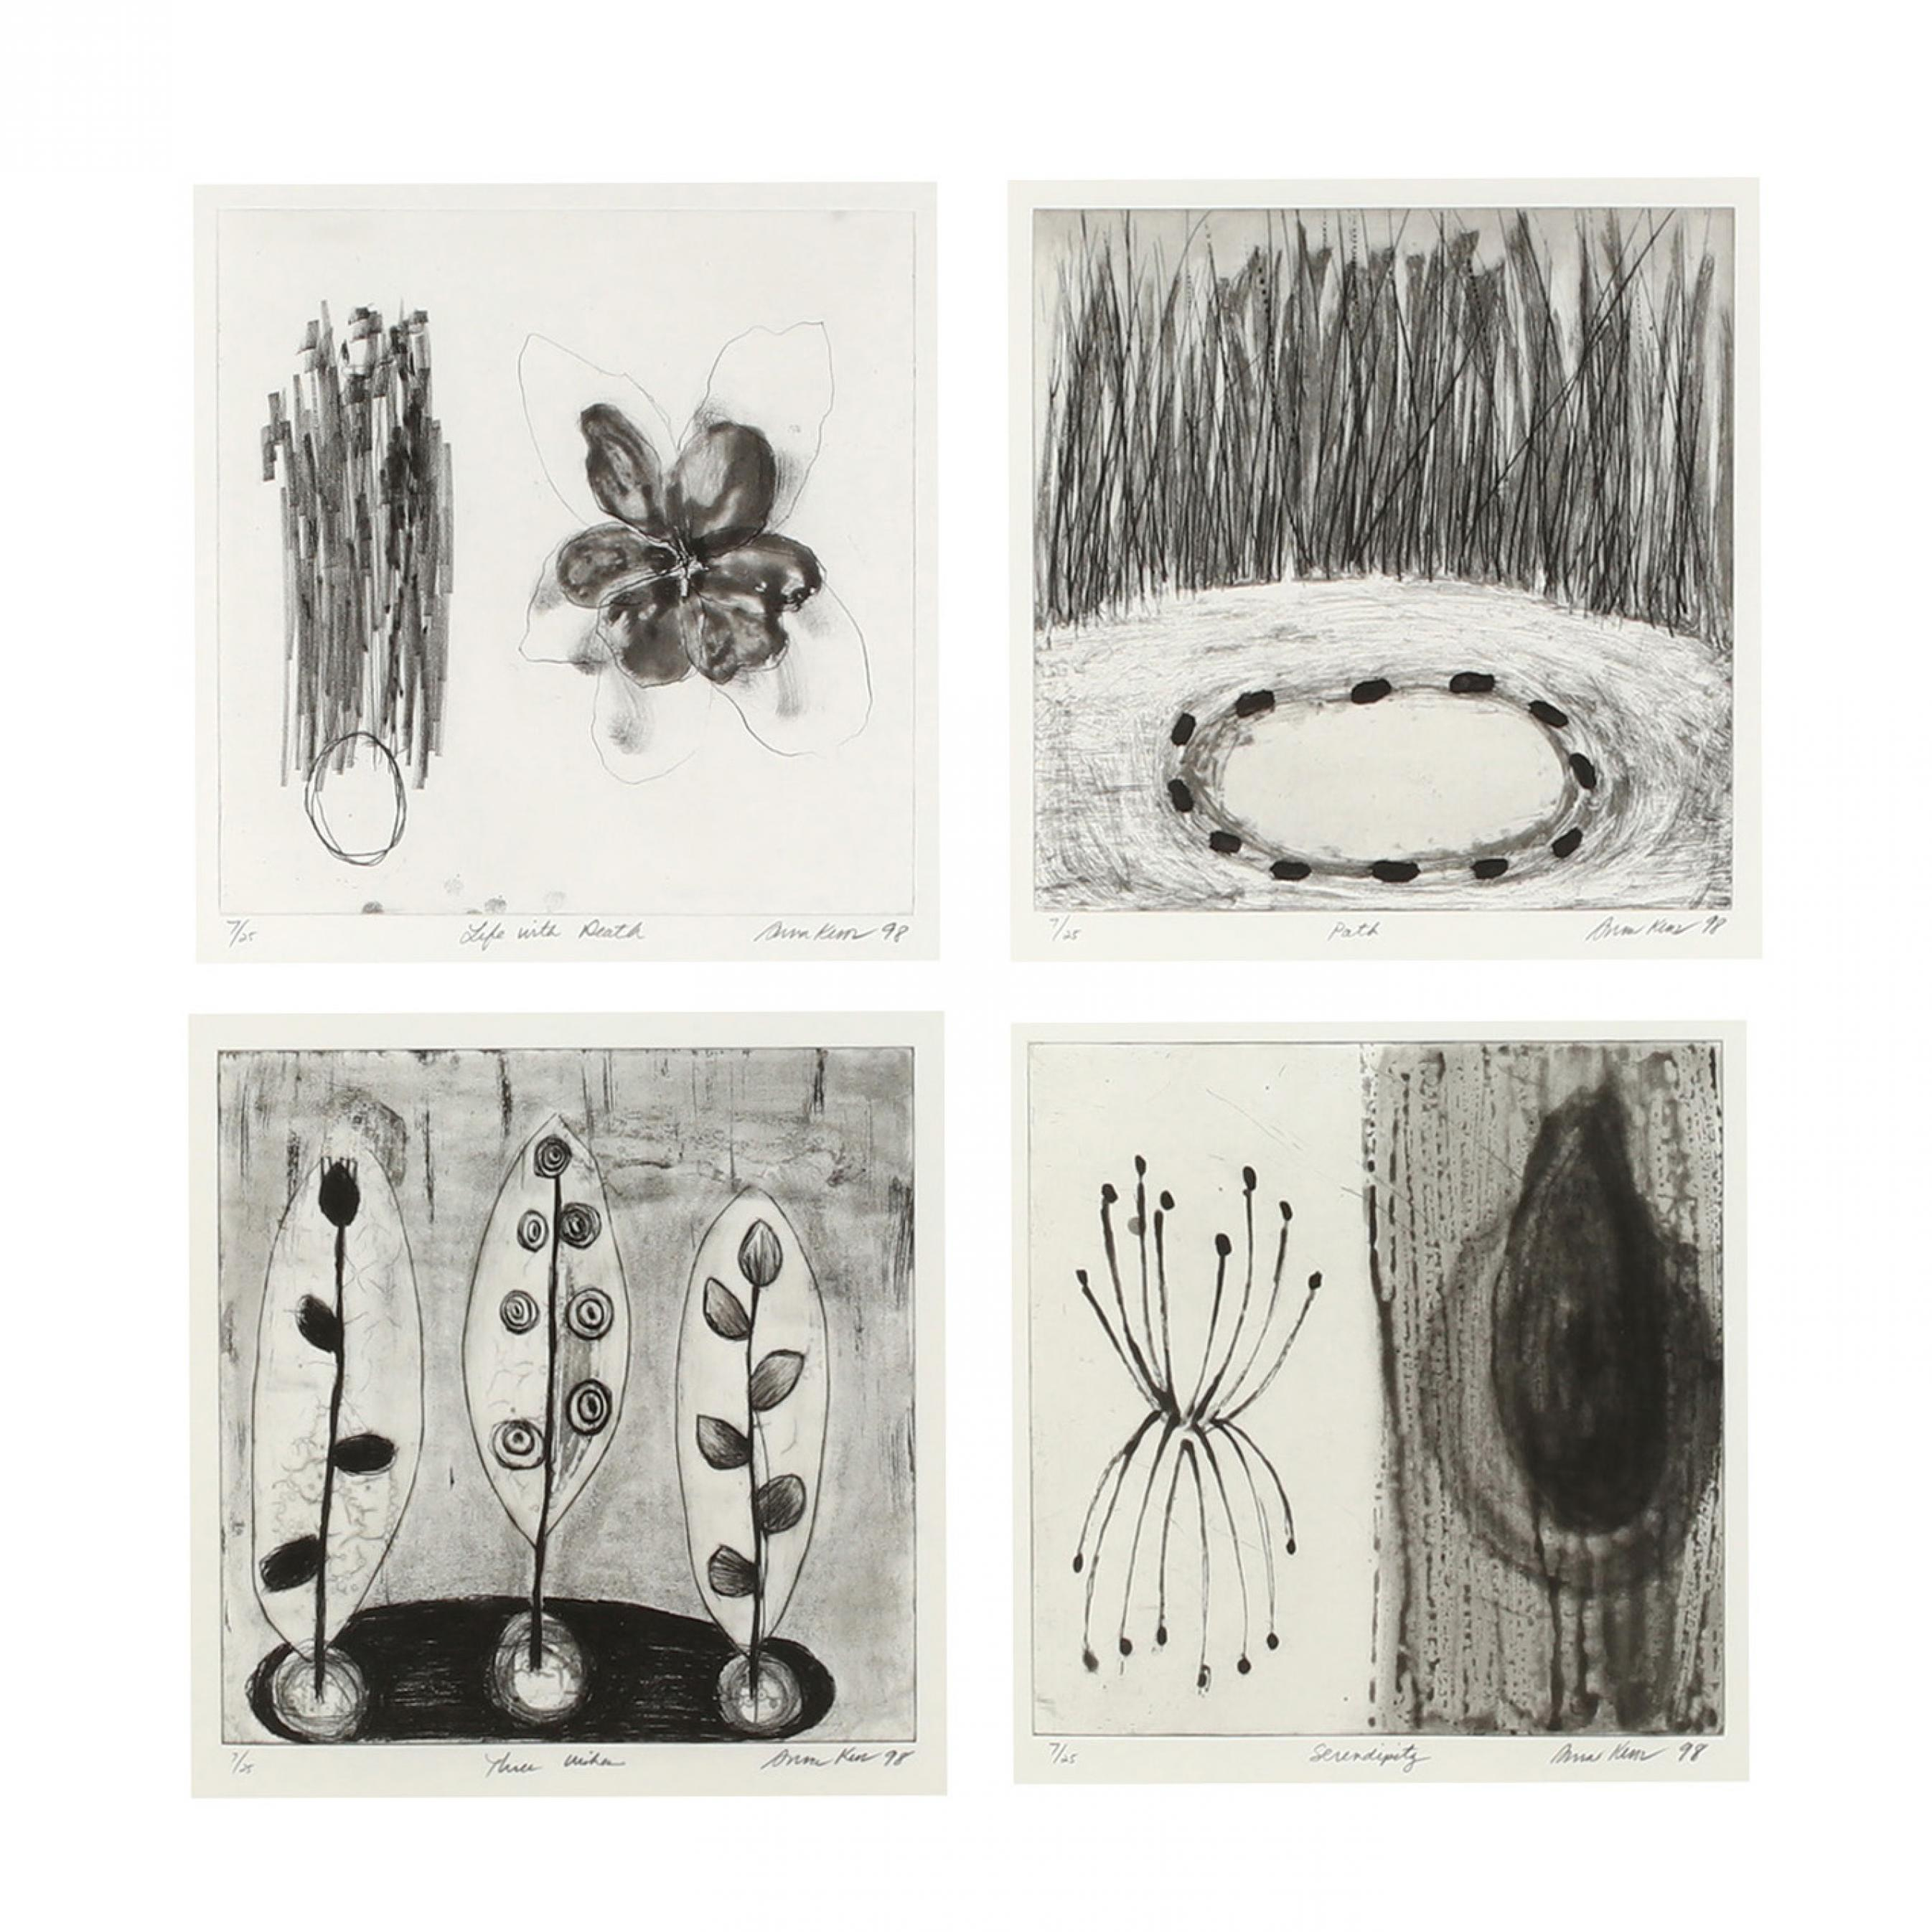 anna-kunz-american-20th-21st-century-group-of-four-etchings